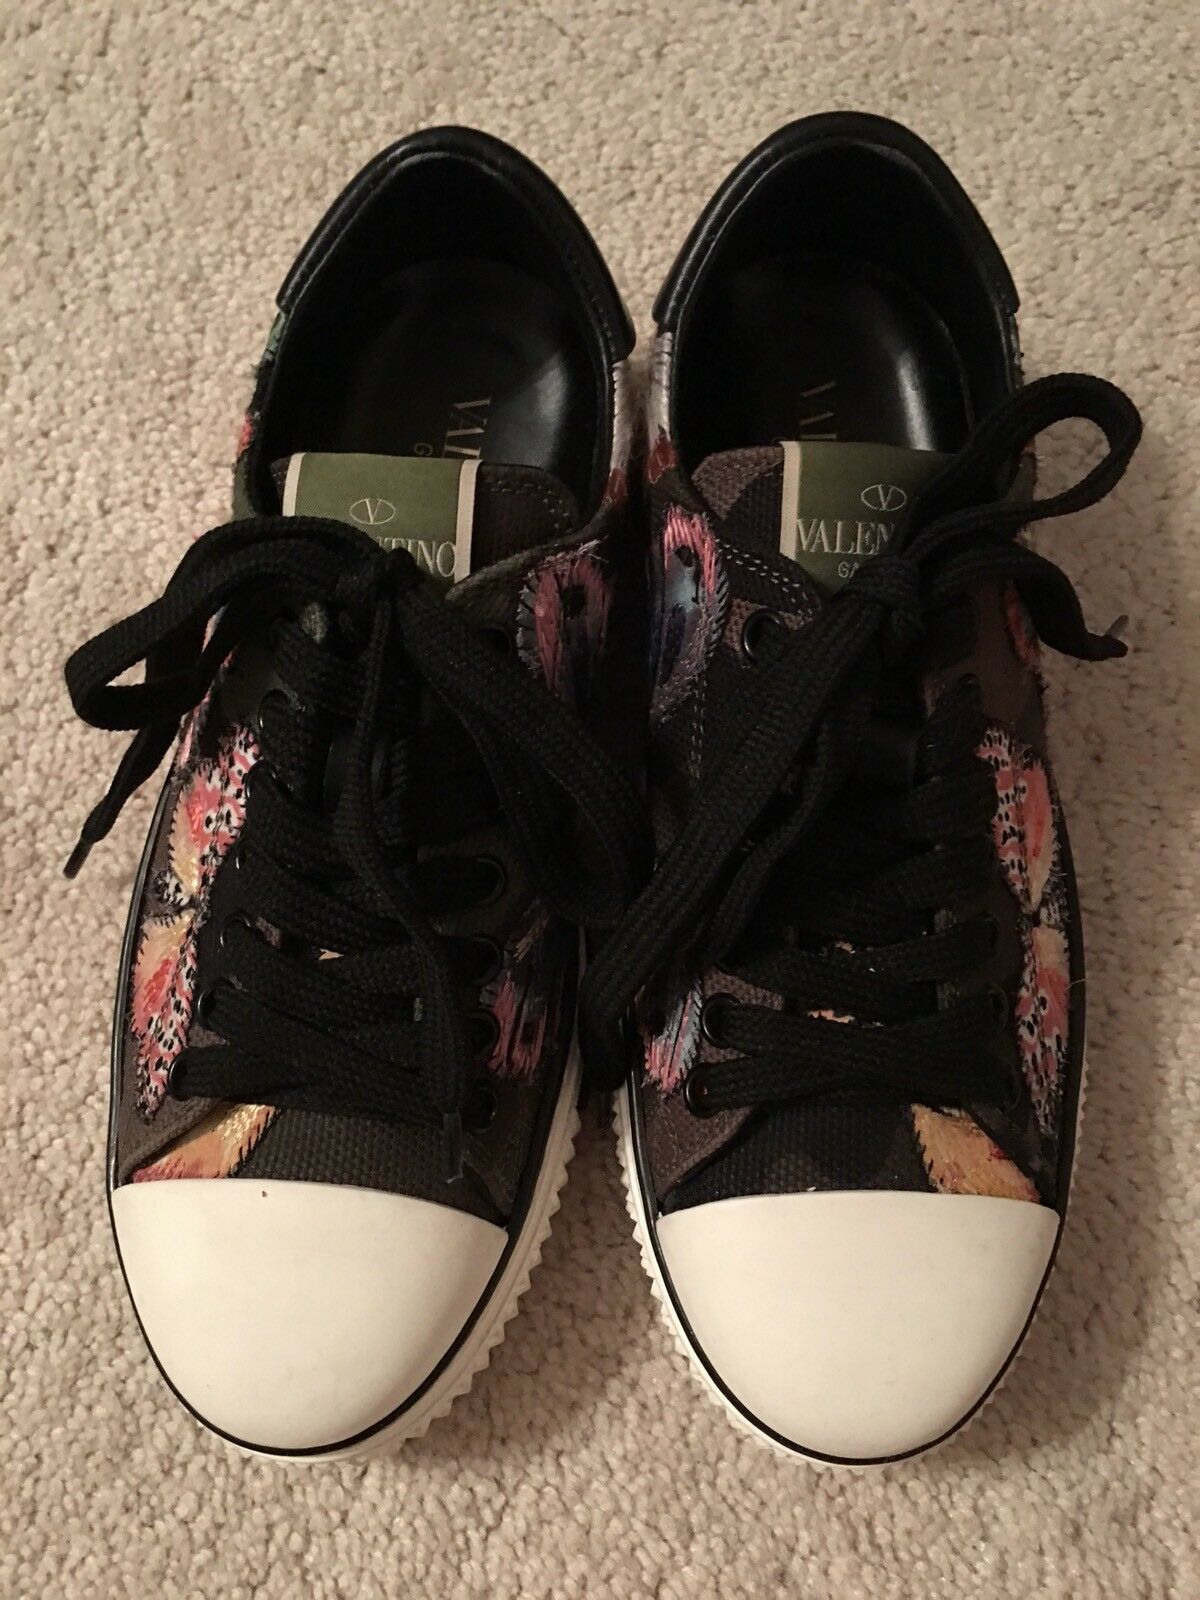 Valentino Garavani Camubutterfly Camo Embroidered Multi Sneakers shoes shoes shoes  35 34a099